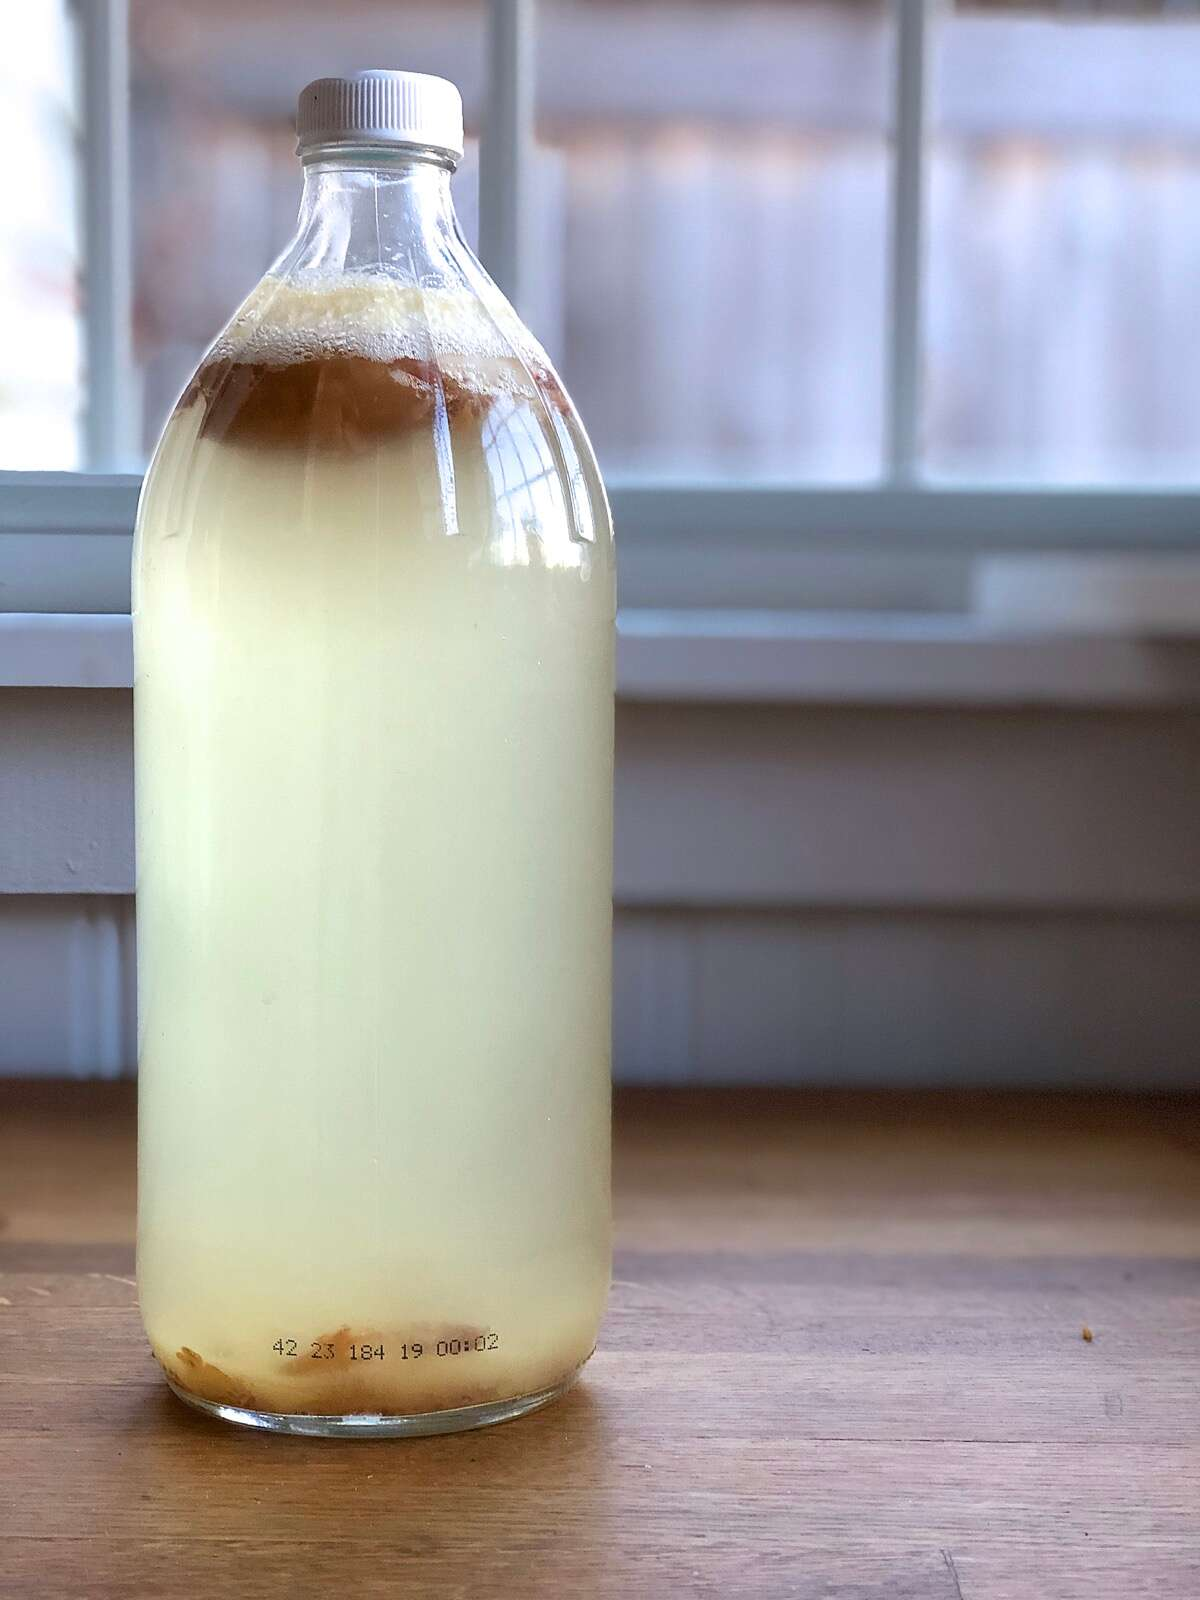 Bottle of yeast water starter after 8 days, ready to use.